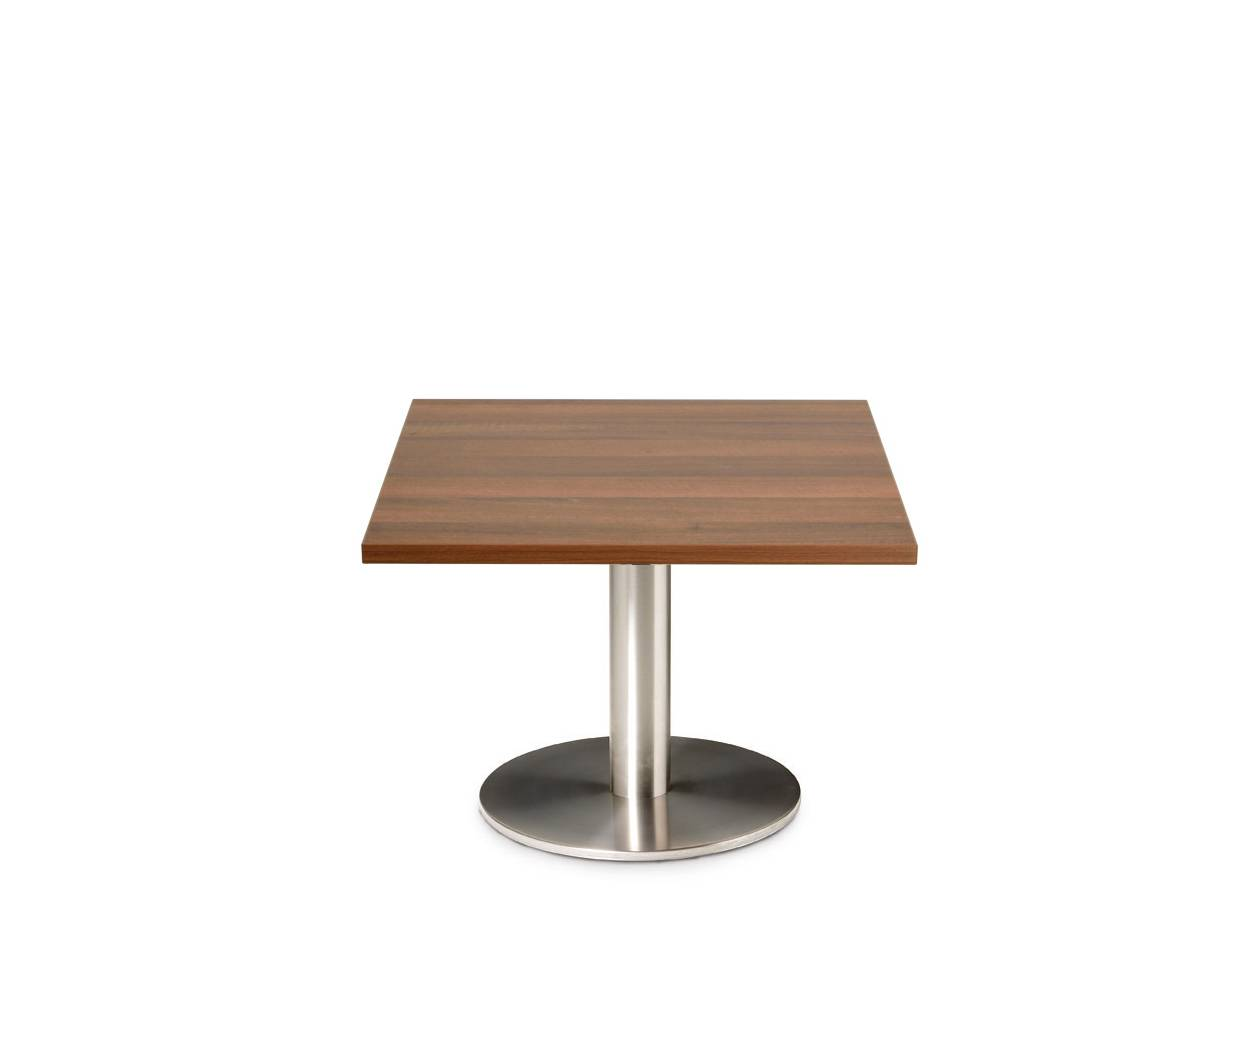 Mobili Furniture Spin Coffee Table Range